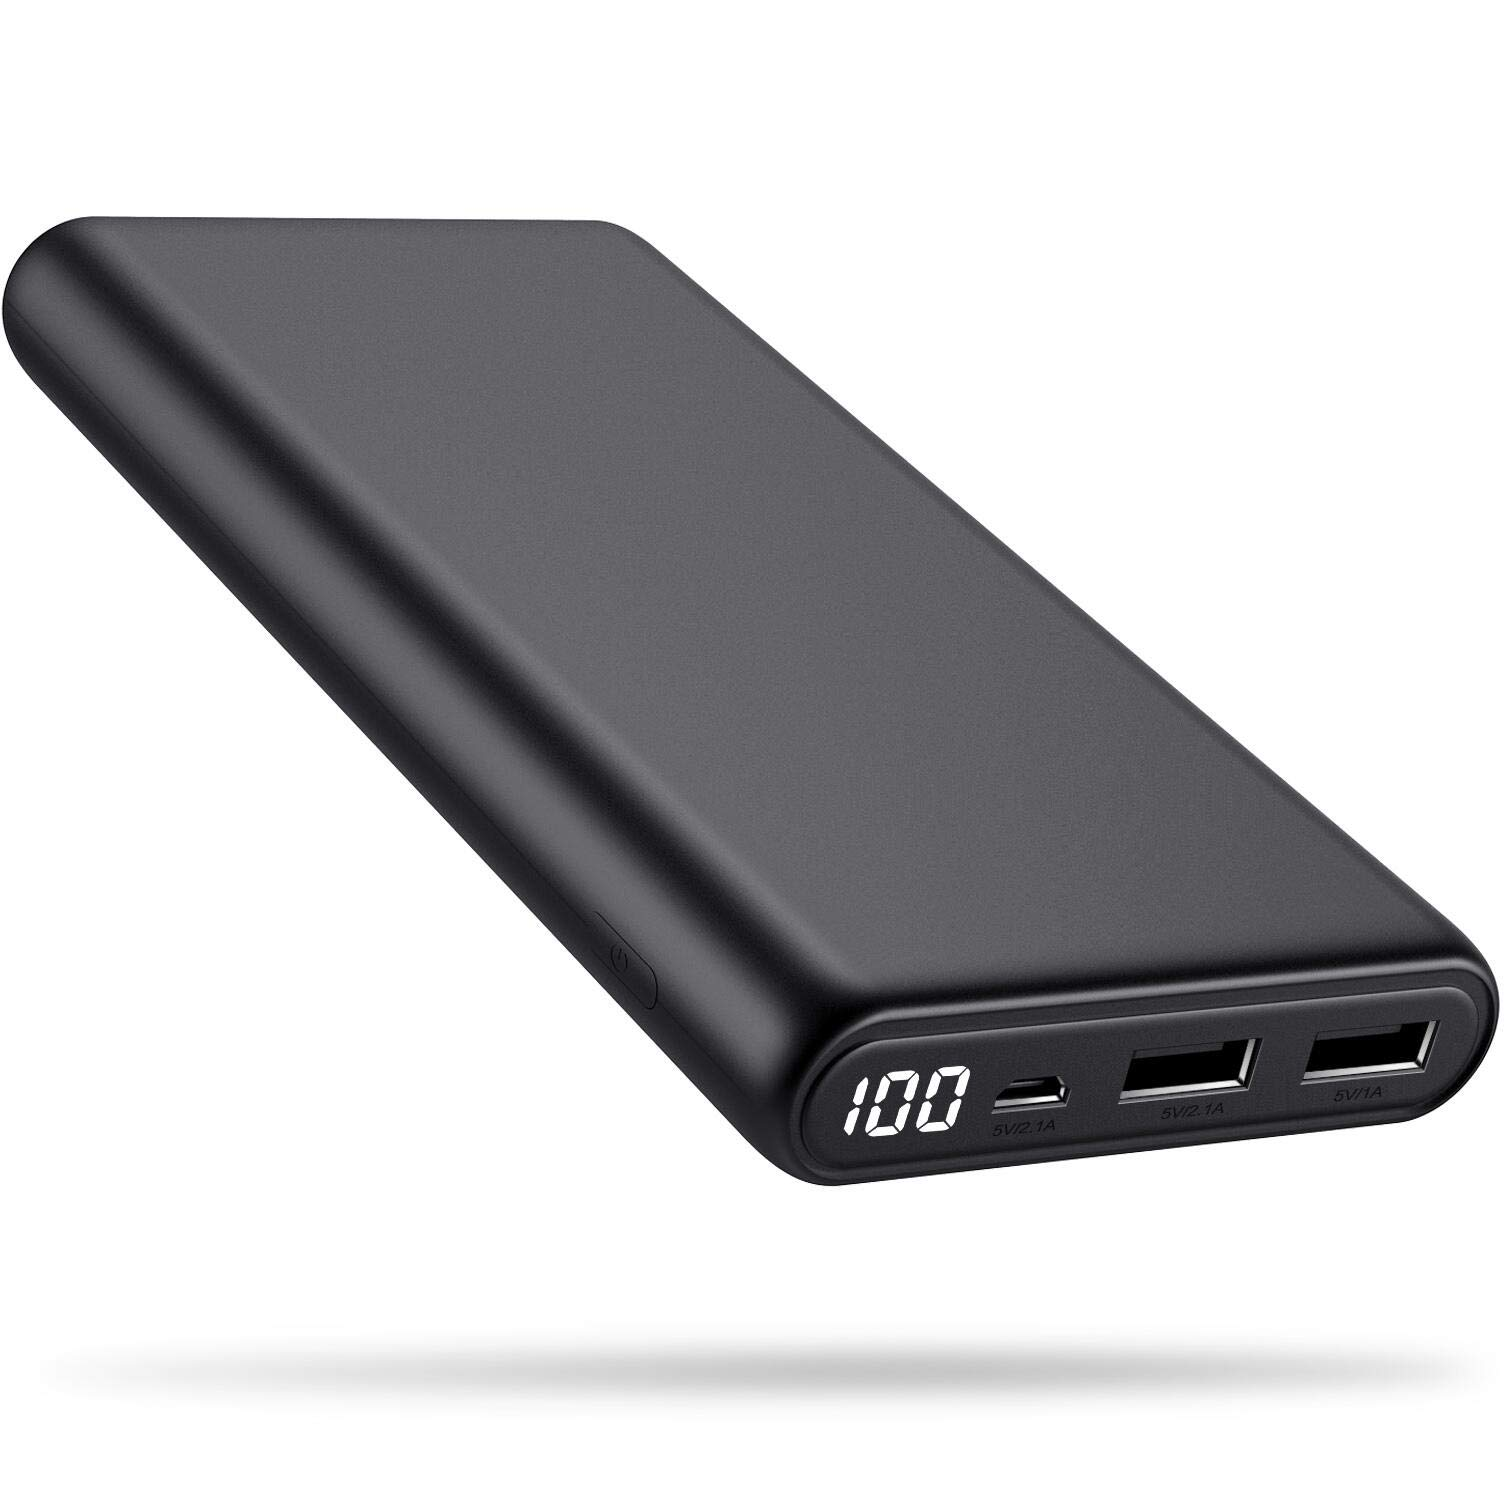 Portable Charger 24800mAh High Capacity Power Bank Enhanced External Battery Packs Charger Dual Output with LCD Digital Display Charging Portable Phone Charger for Smartphone, Android,Tablet and More by Xooparc